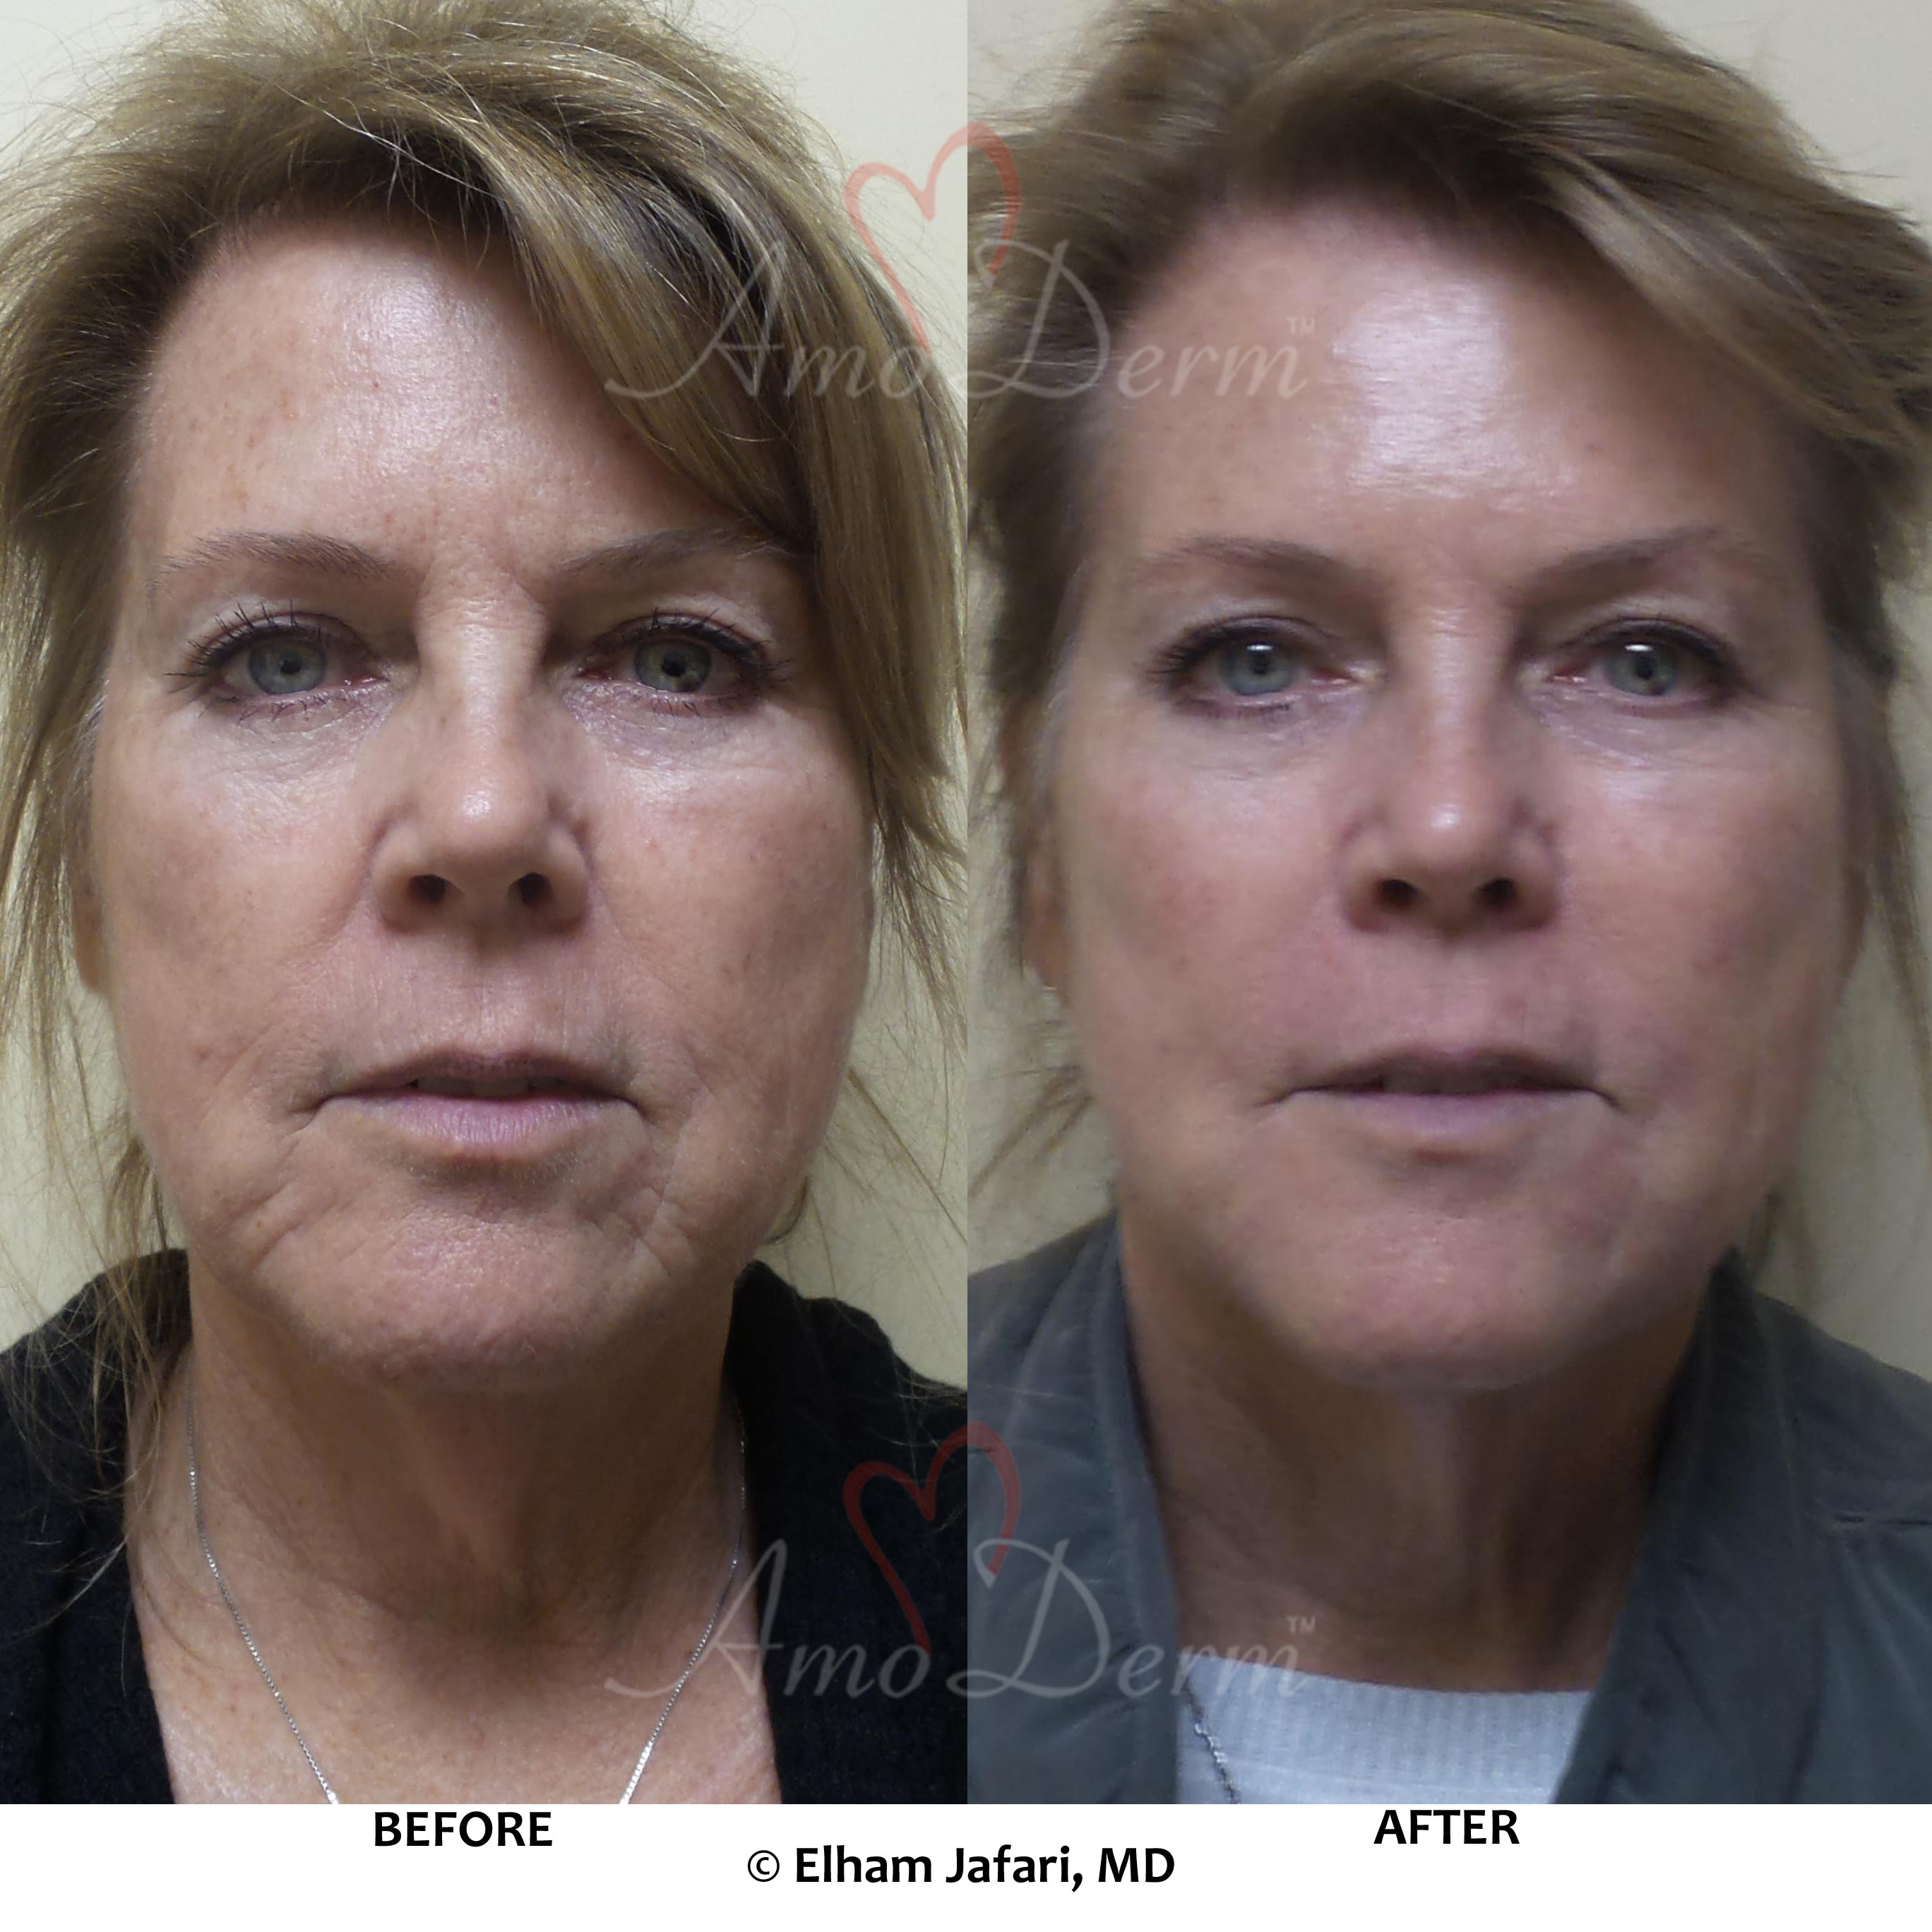 Liquid Facelift with Botox & filler injection in various